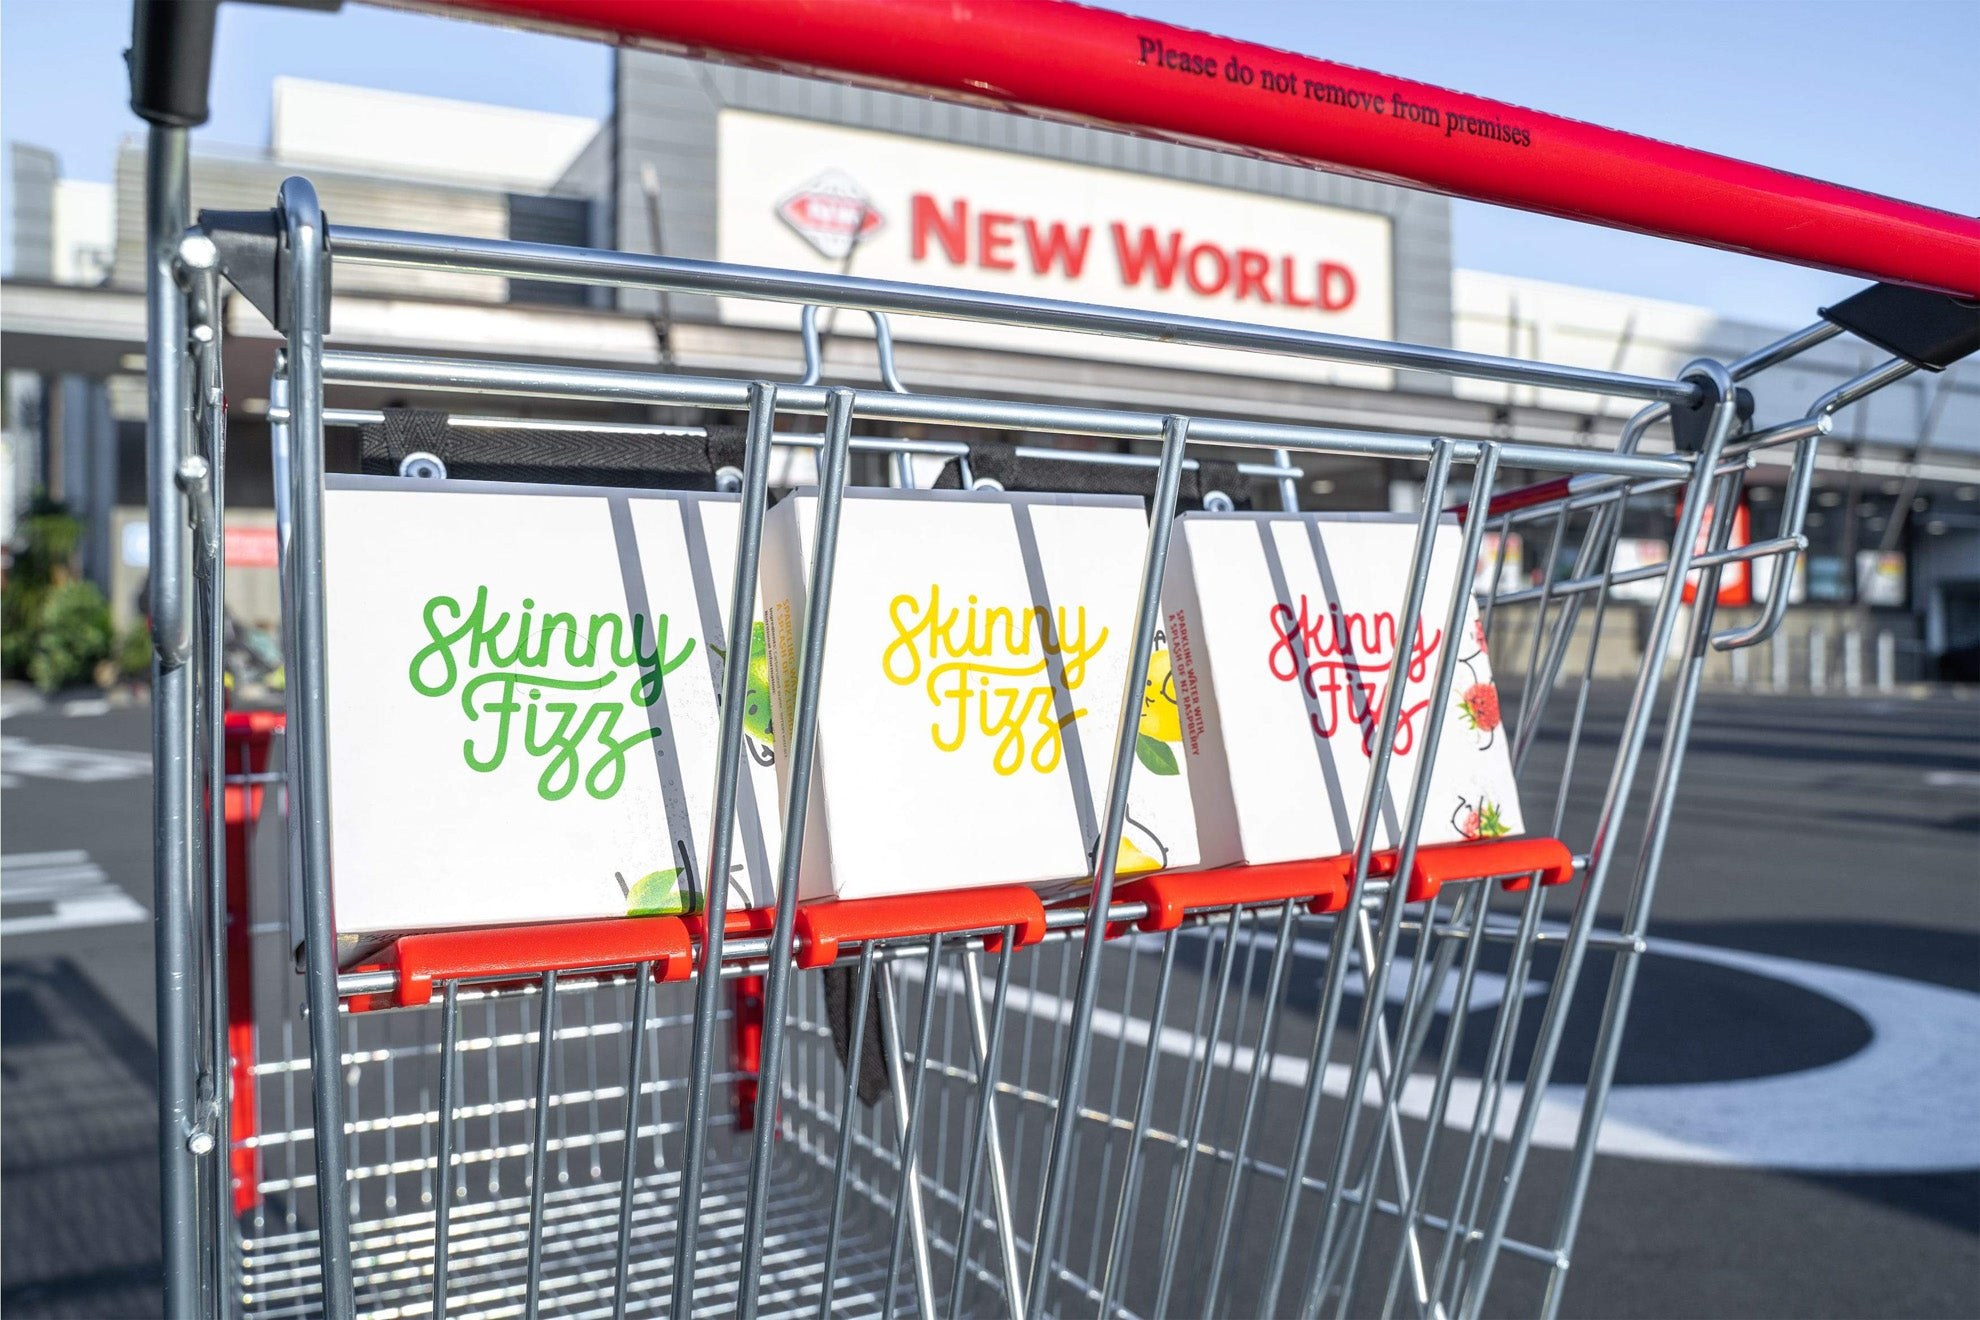 Skinny Fizz four pack in a New World supermarket trolley